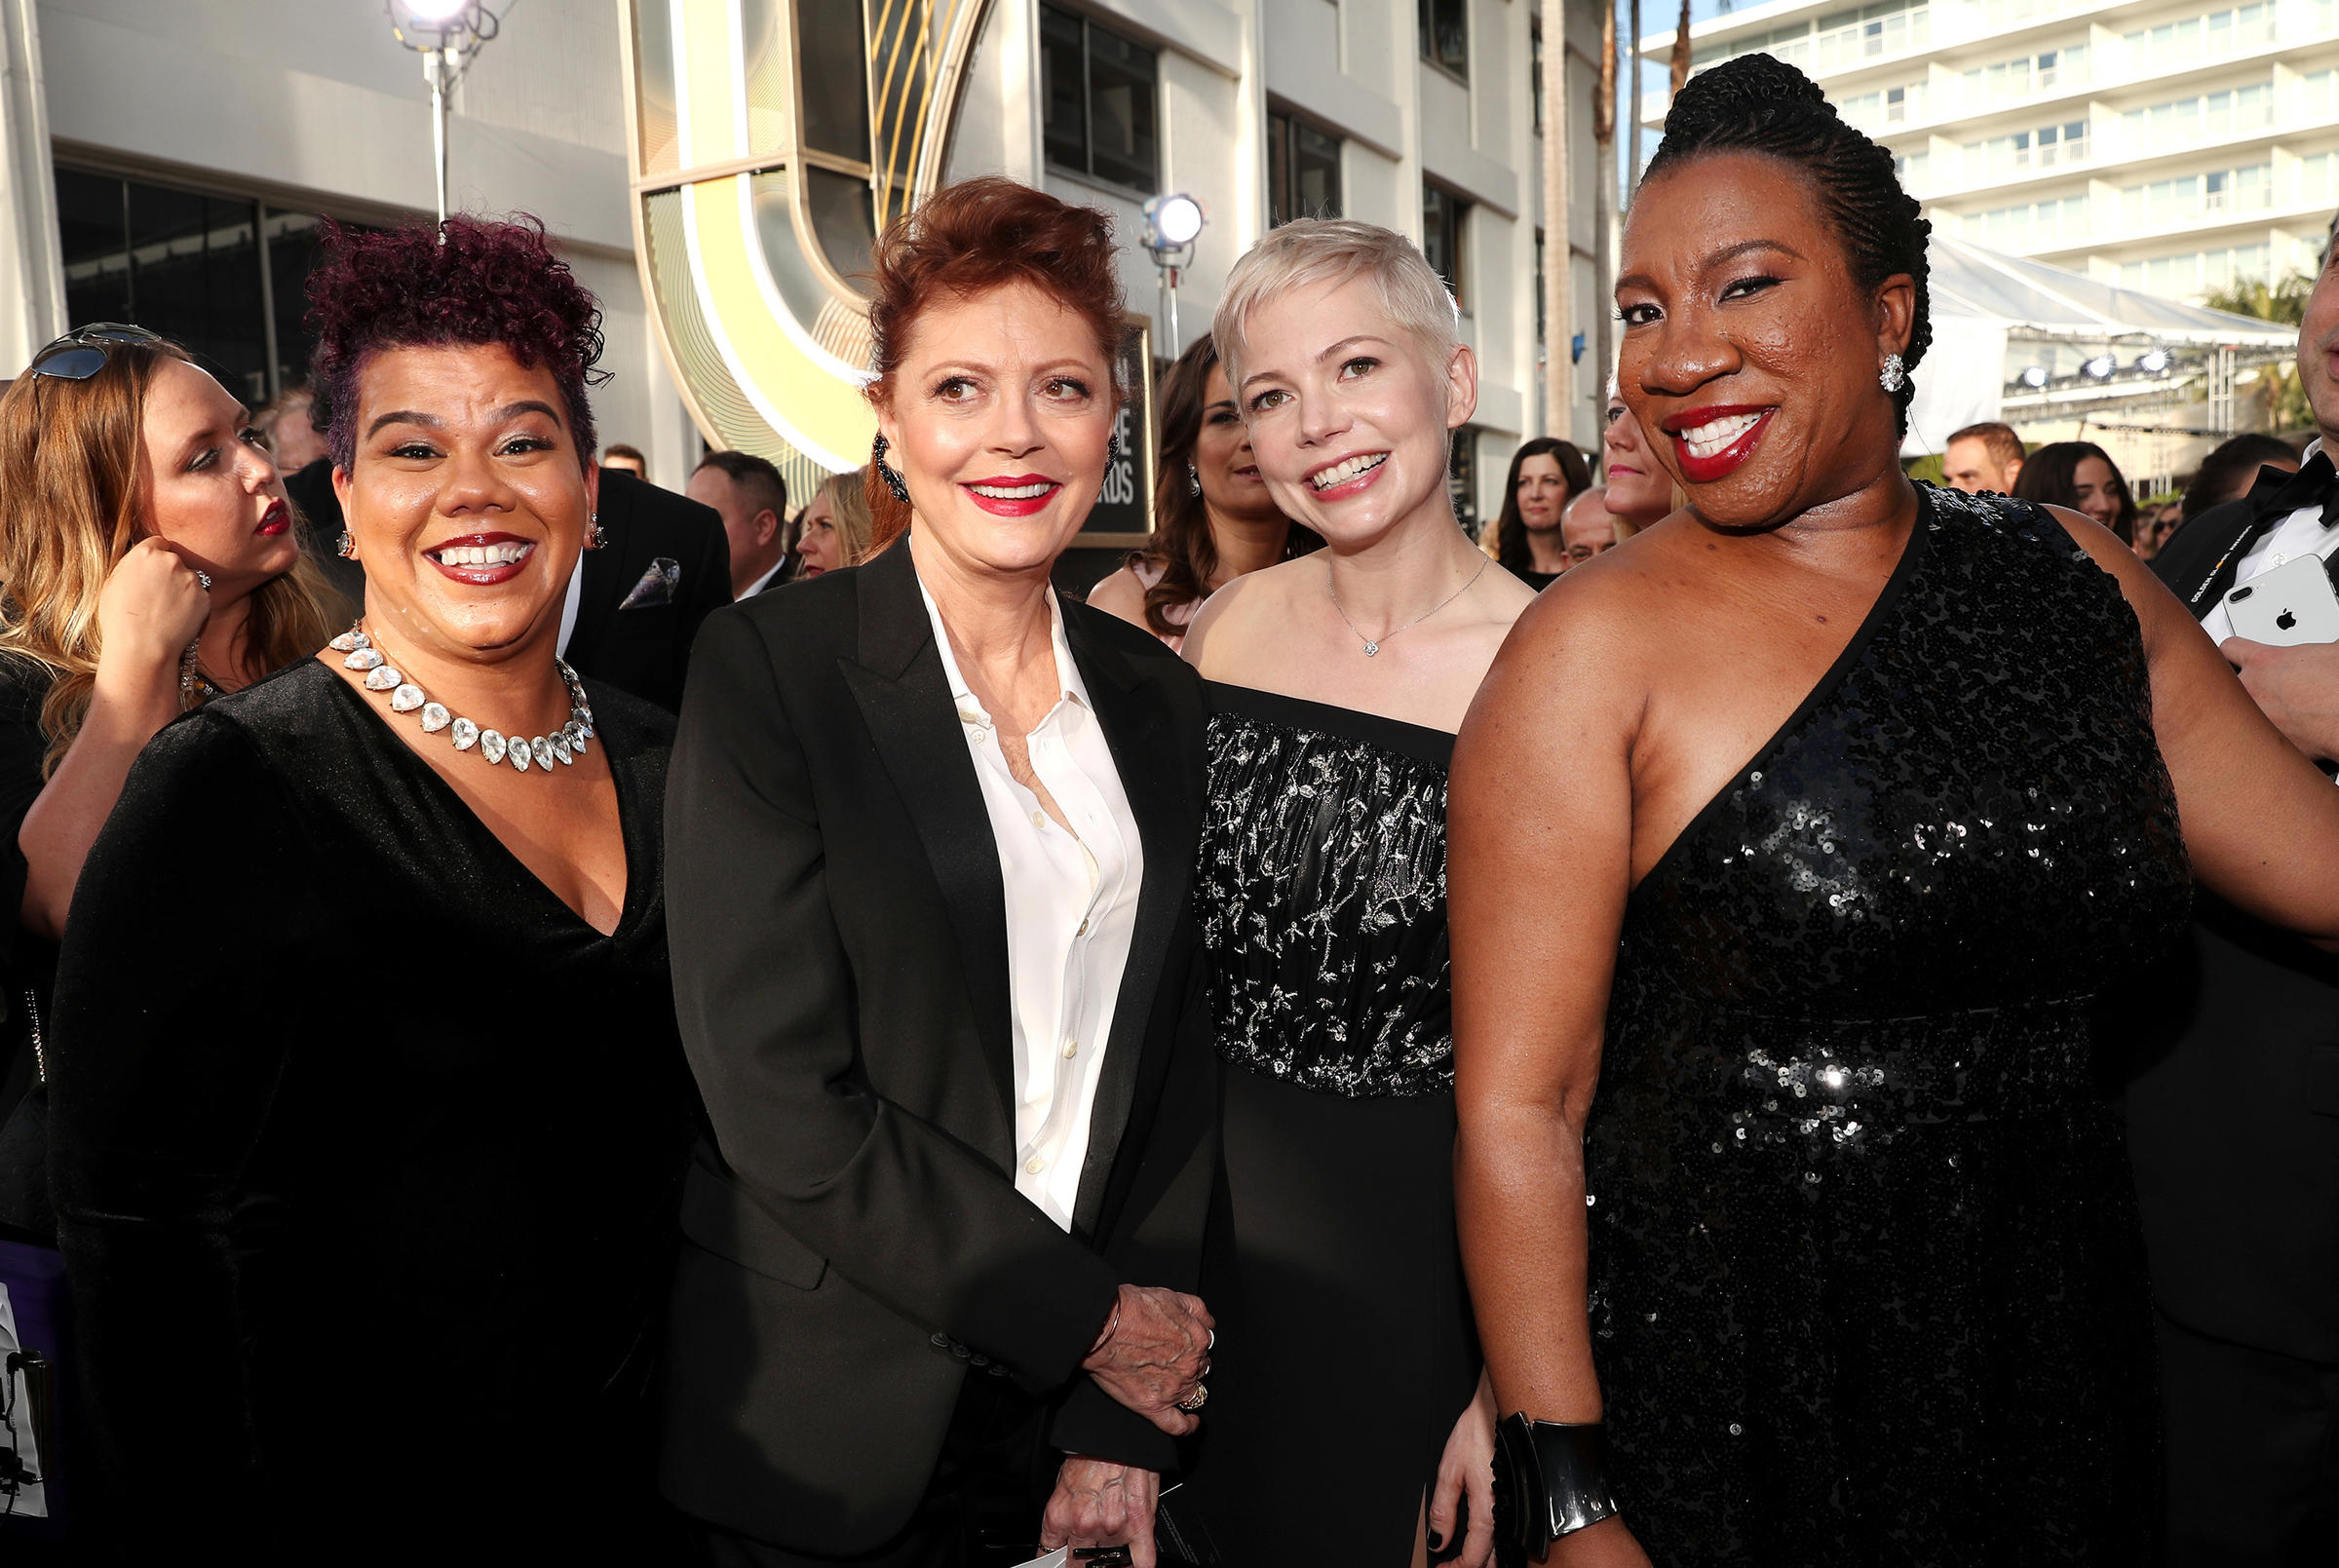 Time's Up pins make sharp anti-sexual harassment point at Golden Globes